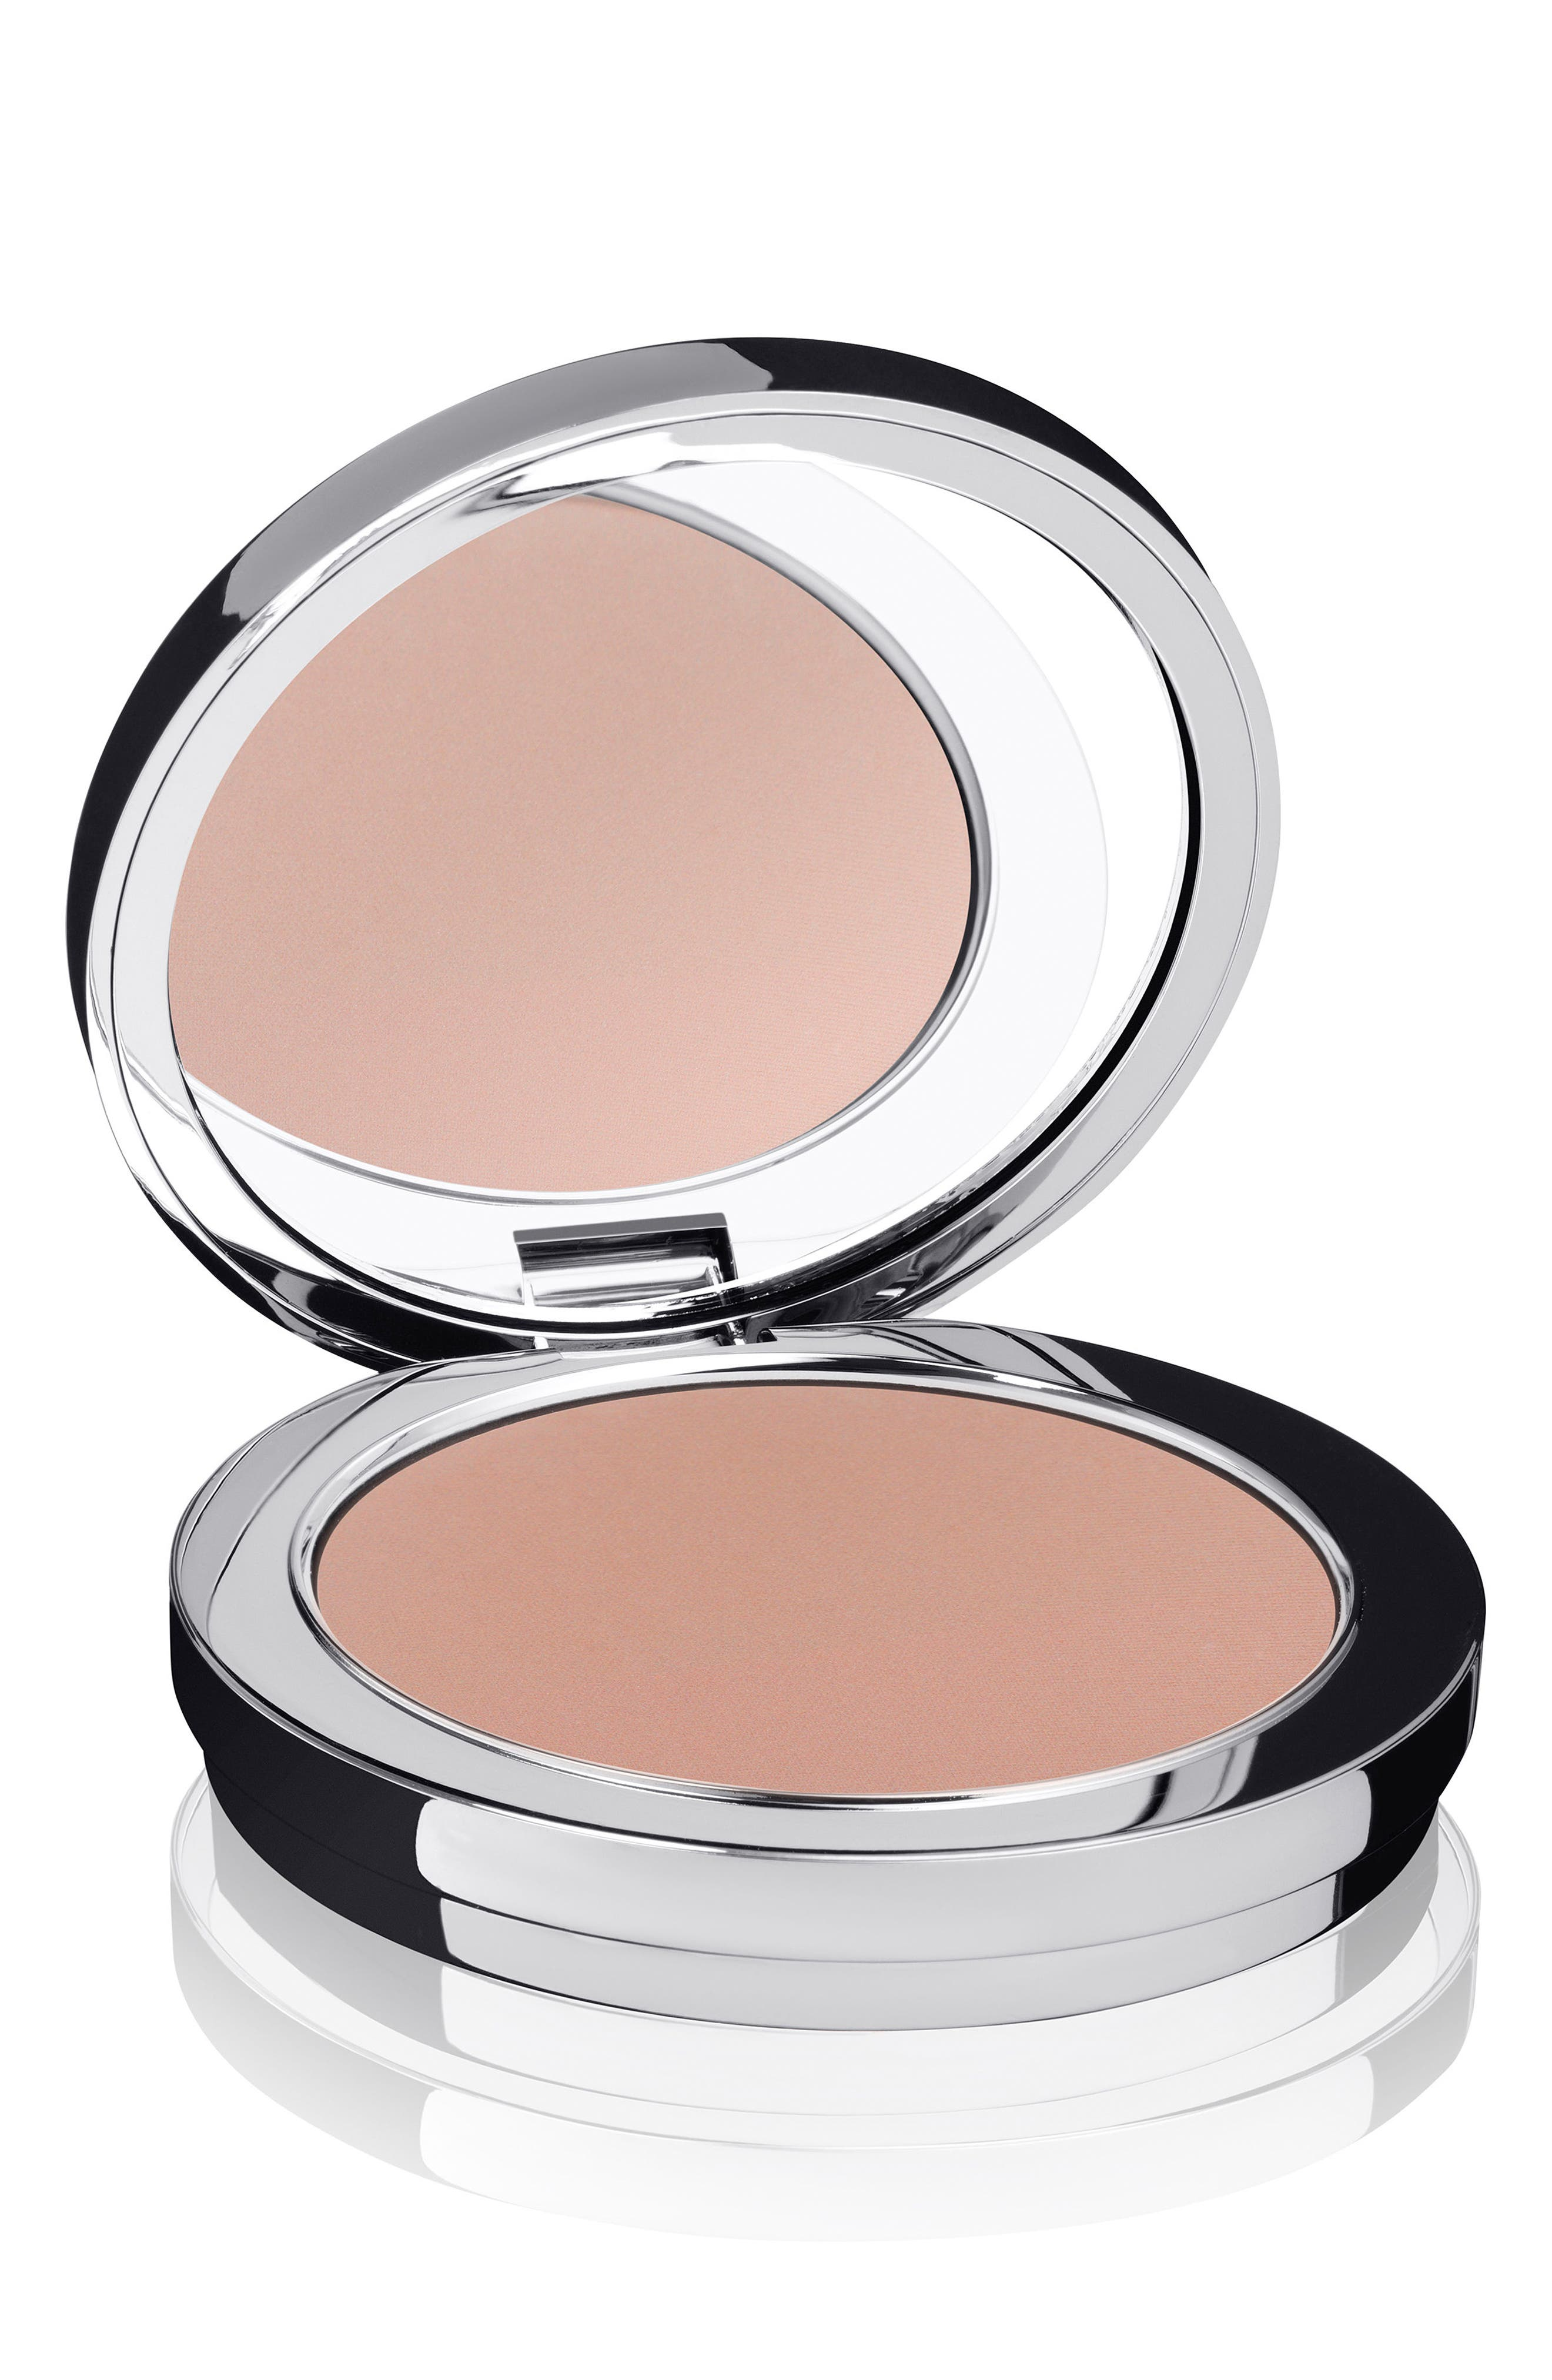 SPACE.NK.apothecary Rodial Instaglam<sup>™</sup> Deluxe Bronzing Powder Compact,                             Main thumbnail 1, color,                             BRONZING POWDER